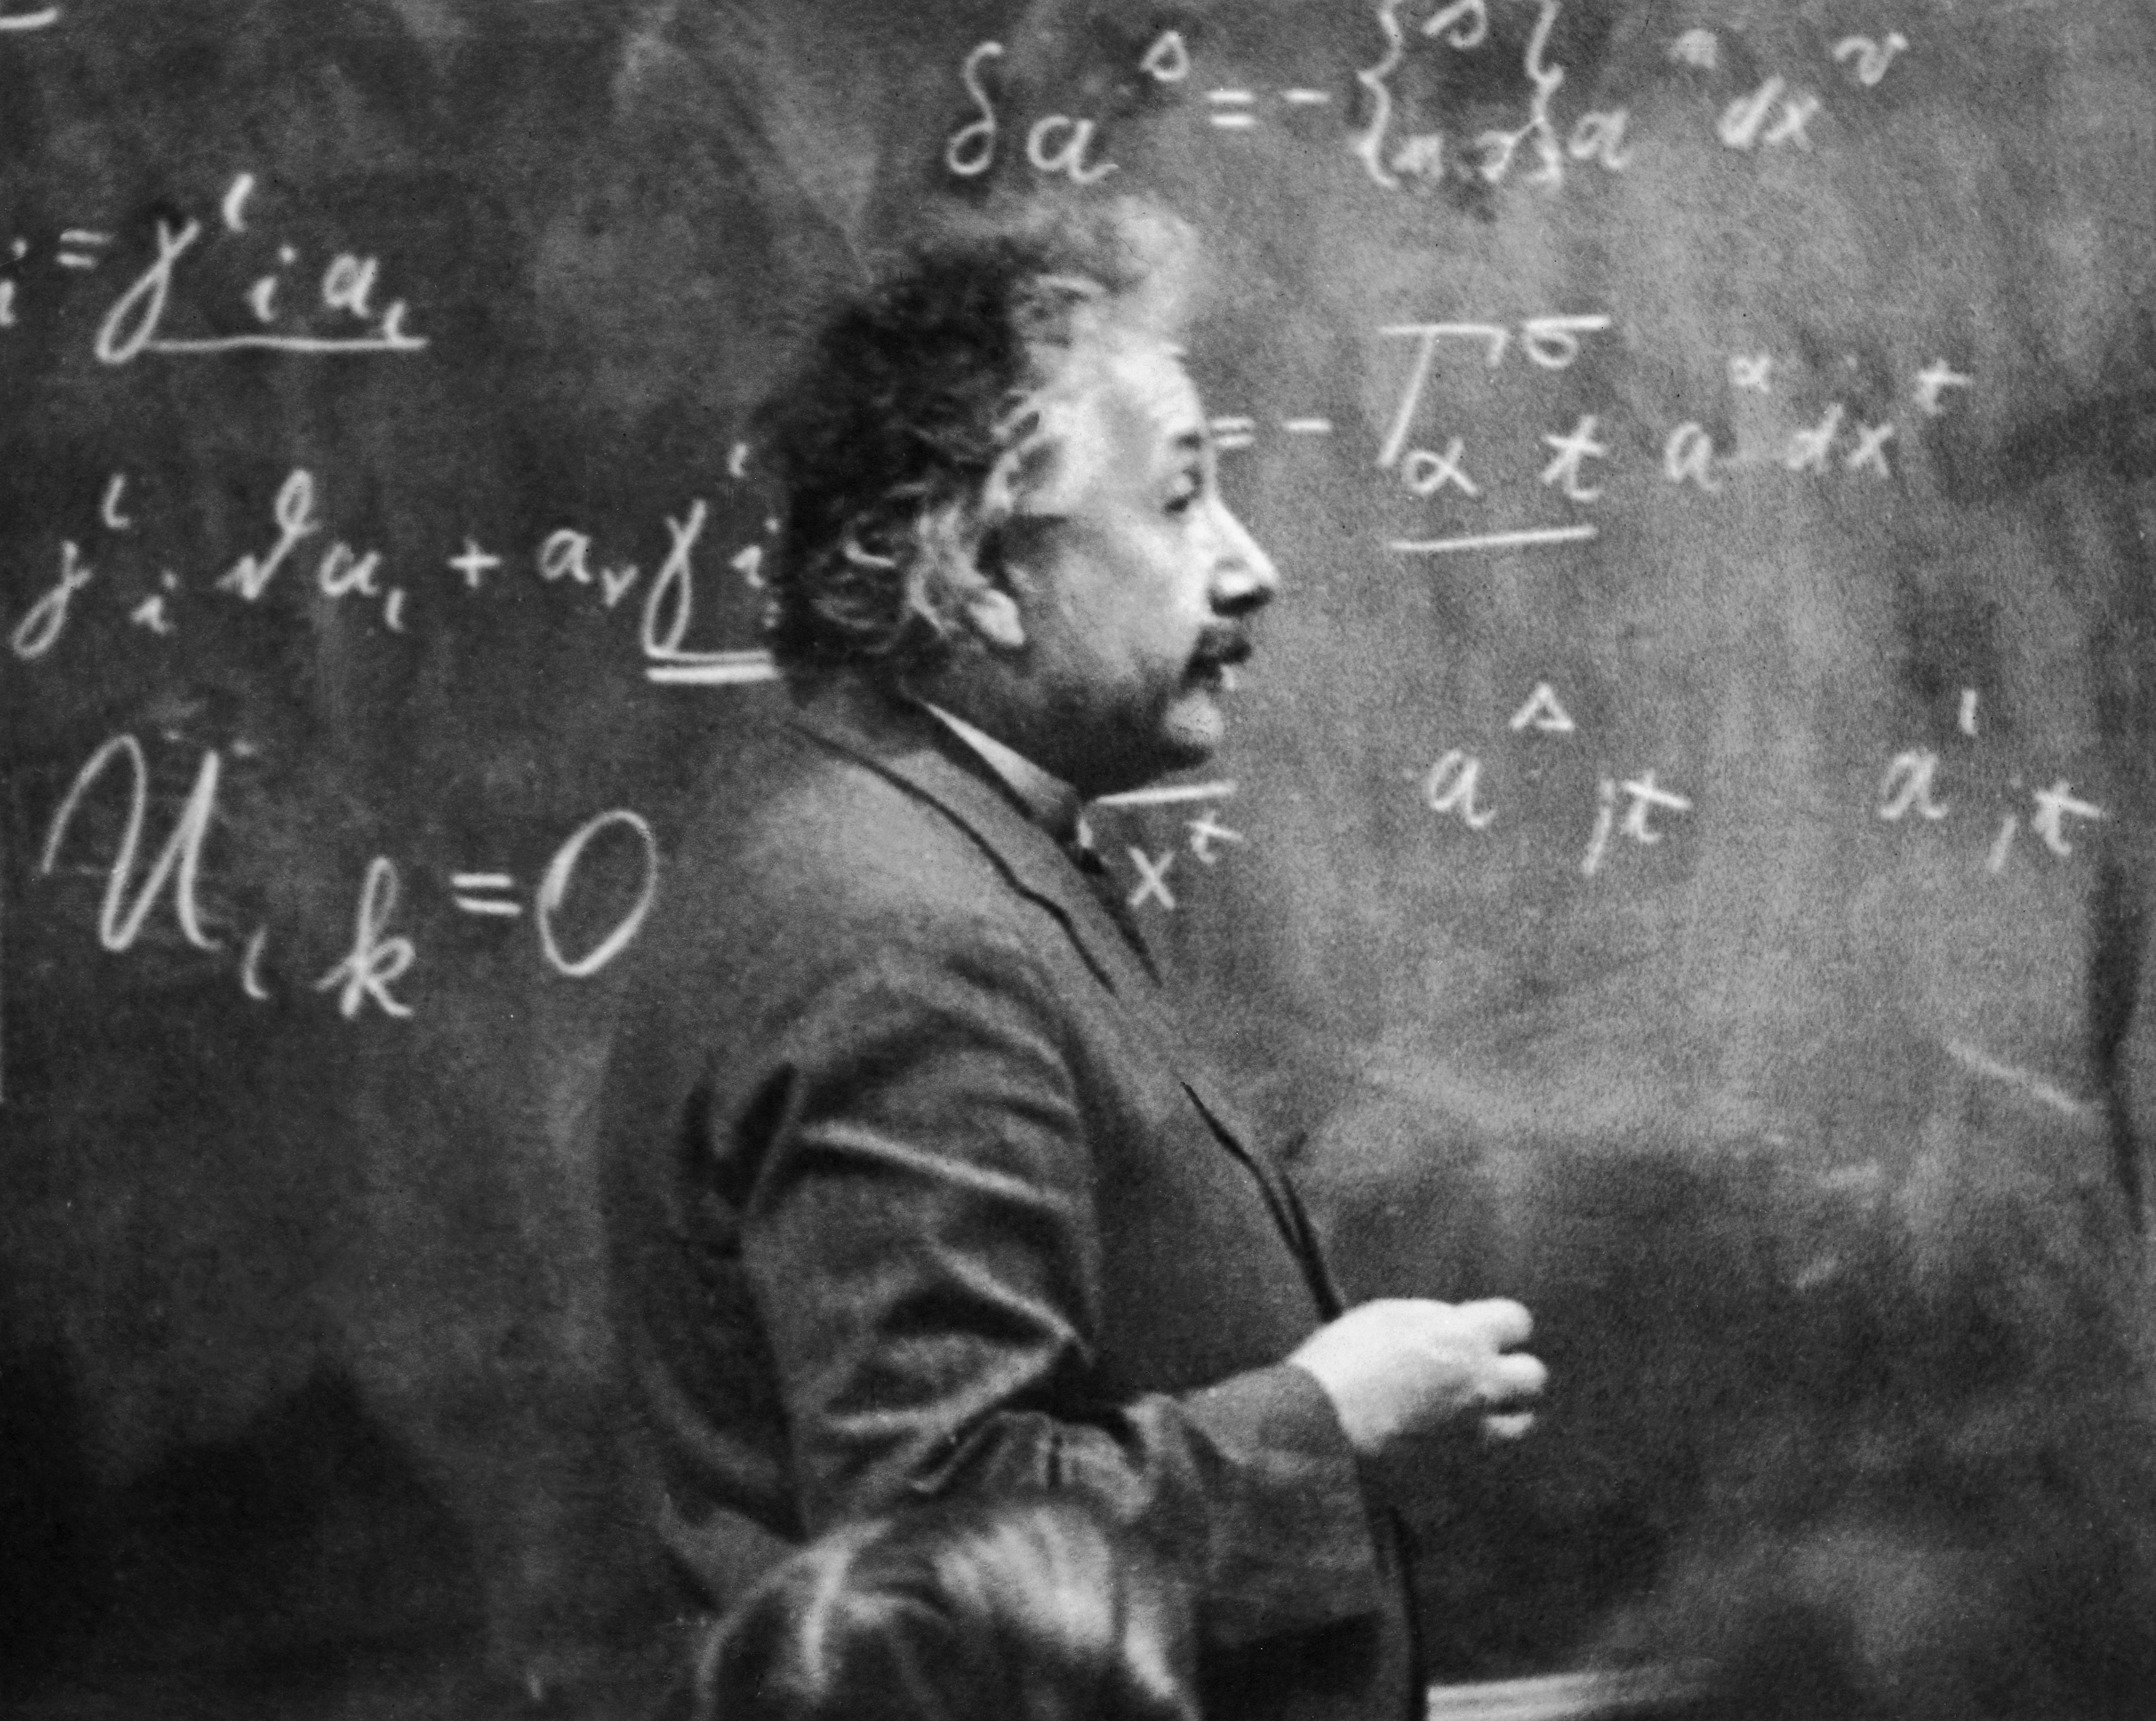 Einstein at blackboard with his equations